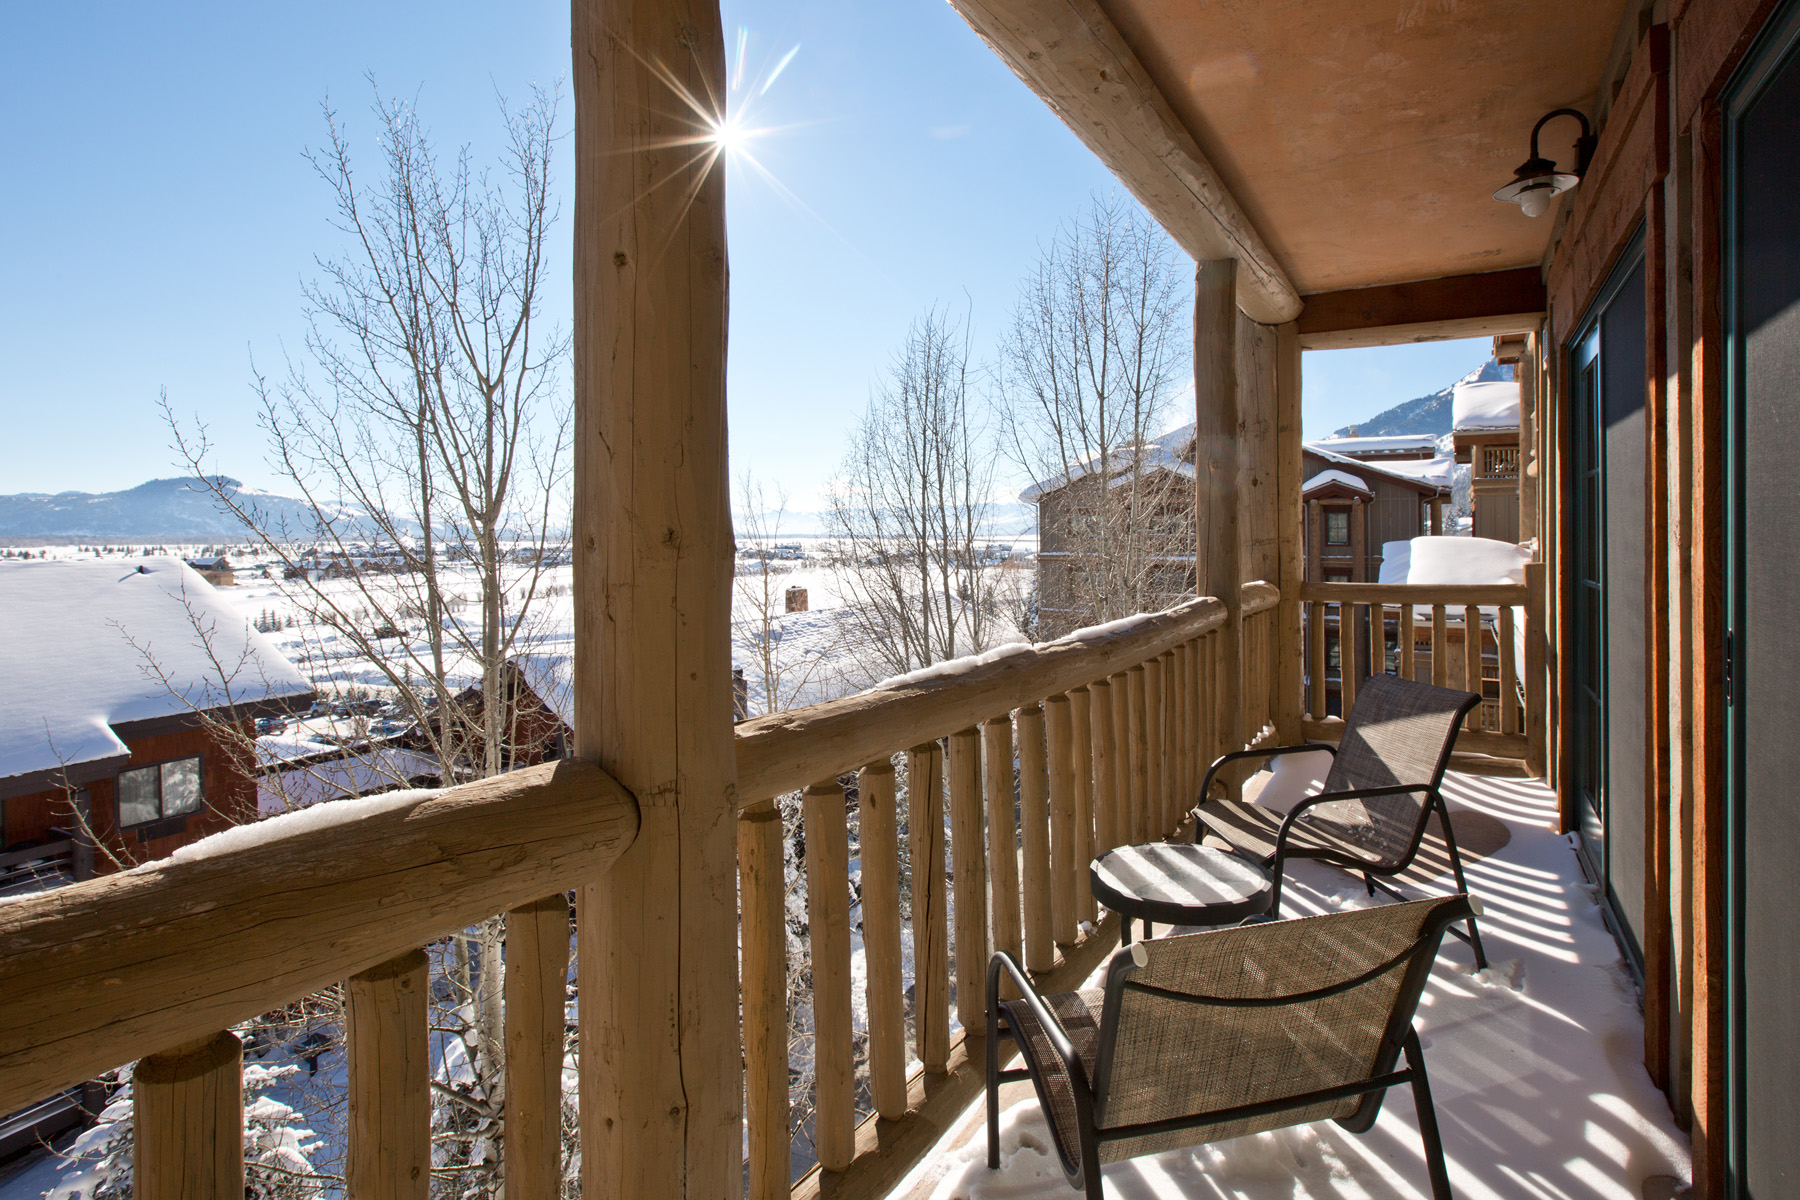 Property For Sale at 2 bdrm/ 2 bath condo in Teton Village